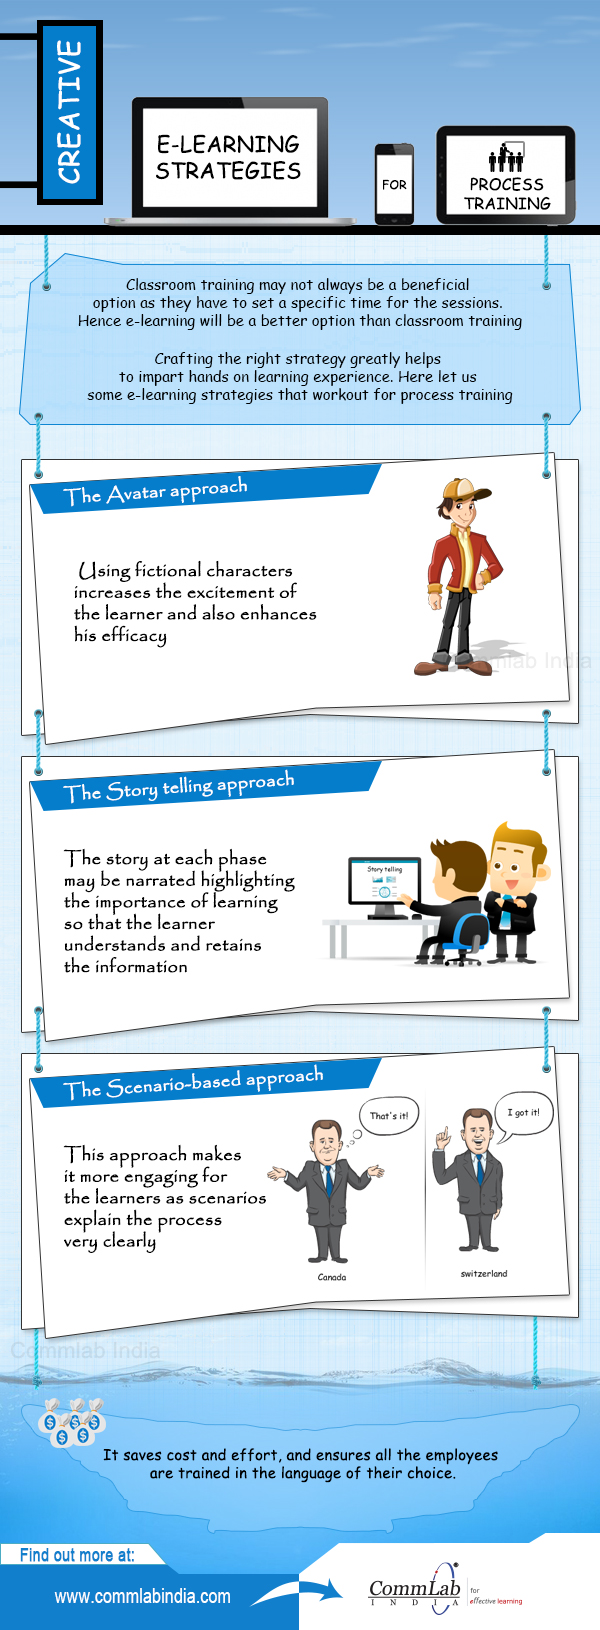 3 Instructional Strategies to Impart Effective Process Training Online [Infographic]